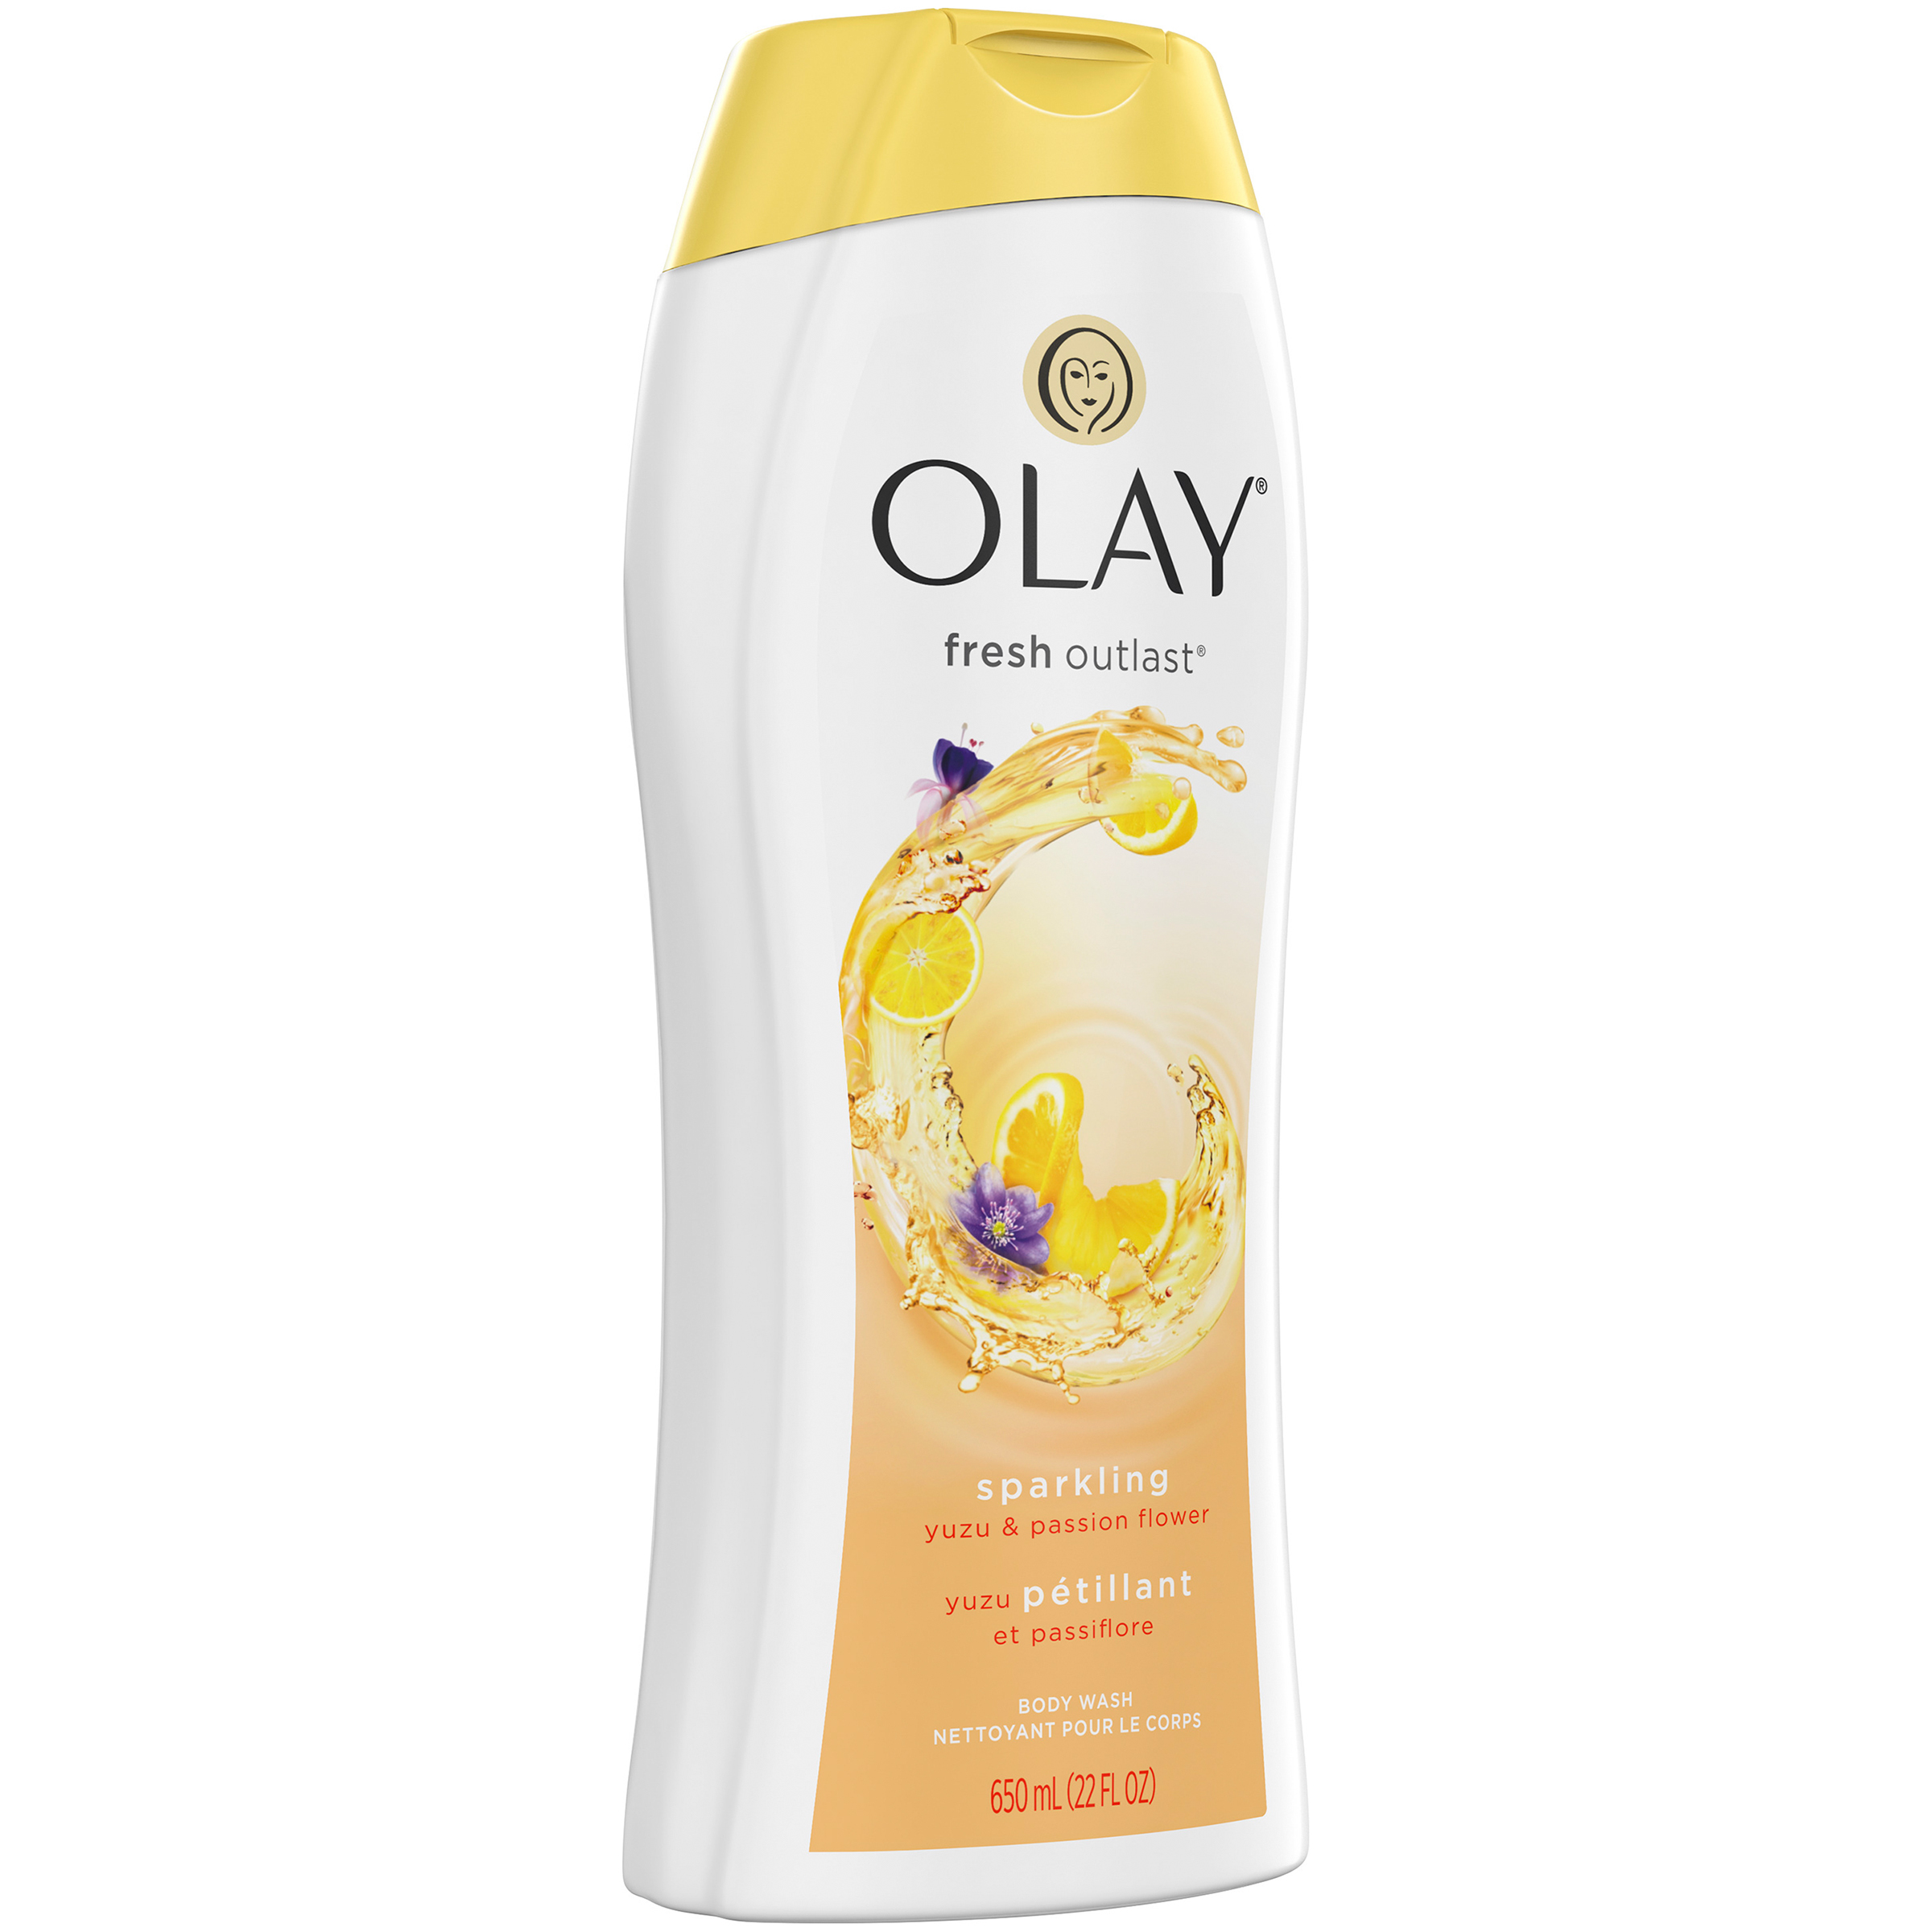 Olay Fresh Outlast Sparkling Yuzu and Passion Flower Body Wash, 22 oz